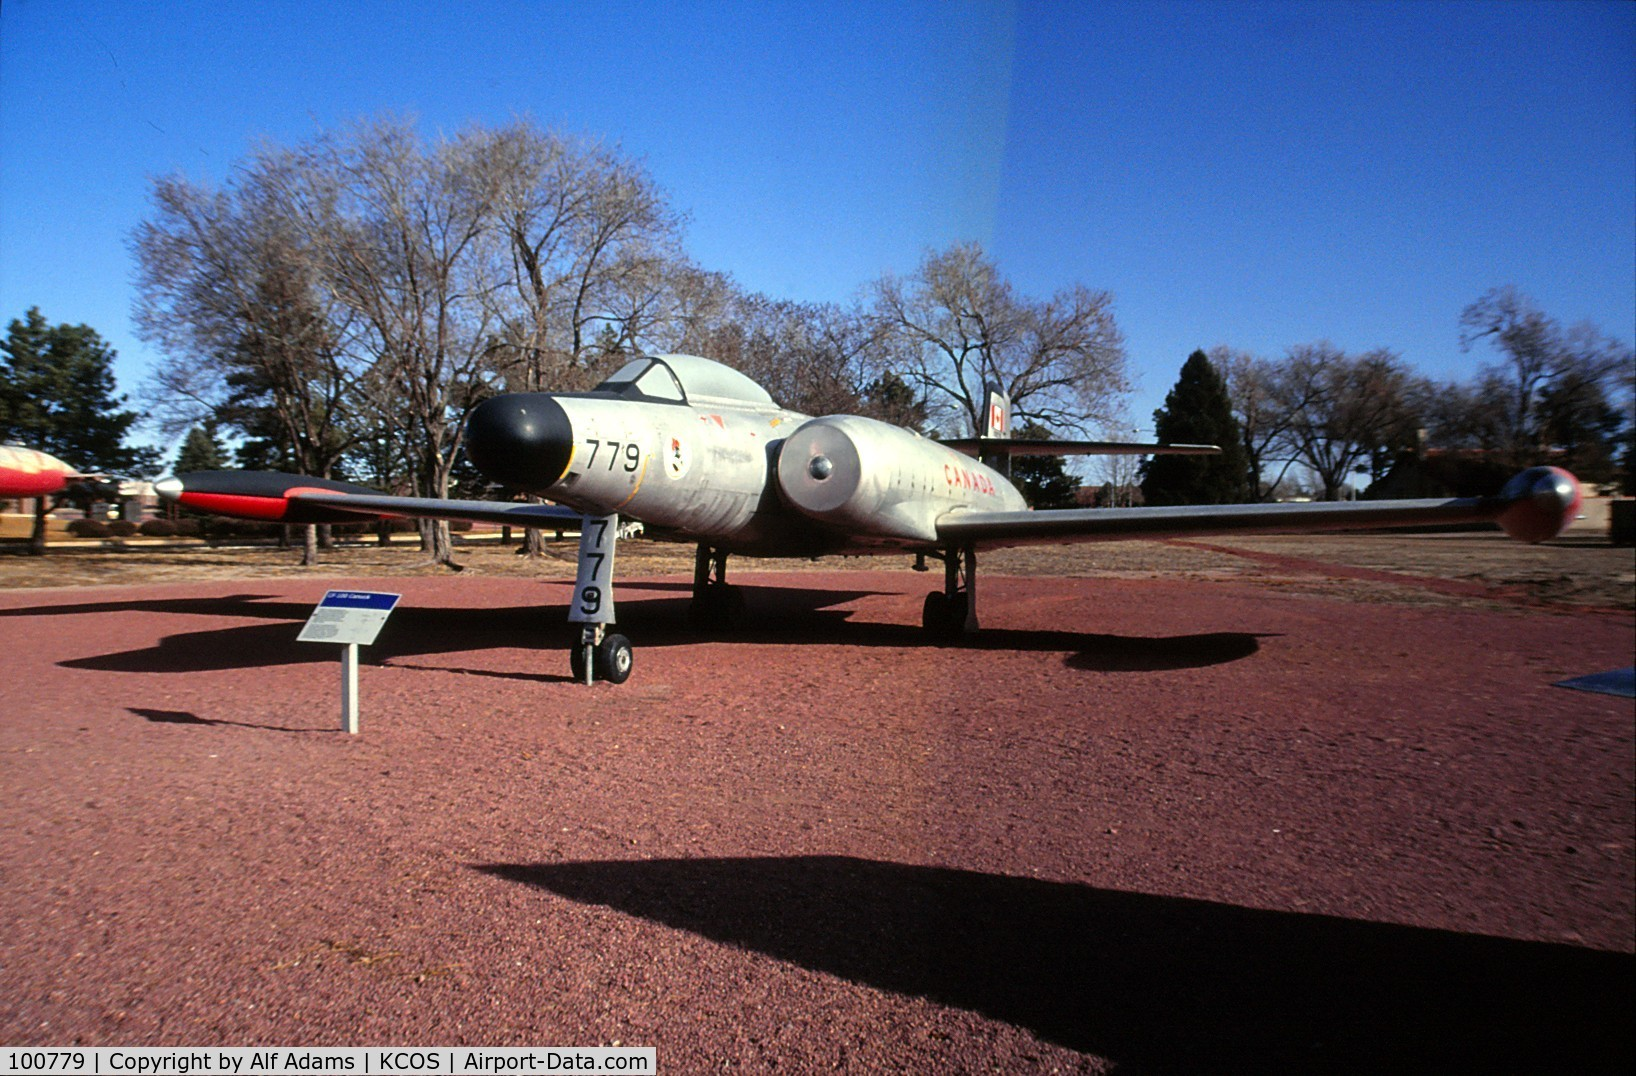 100779, 1970 Avro Canada CF-100 Mk.5 Canuck C/N C-100/5/679, Shown at the museum on Peterson Air Force Base, Colorado Springs, Colorado in 1992.